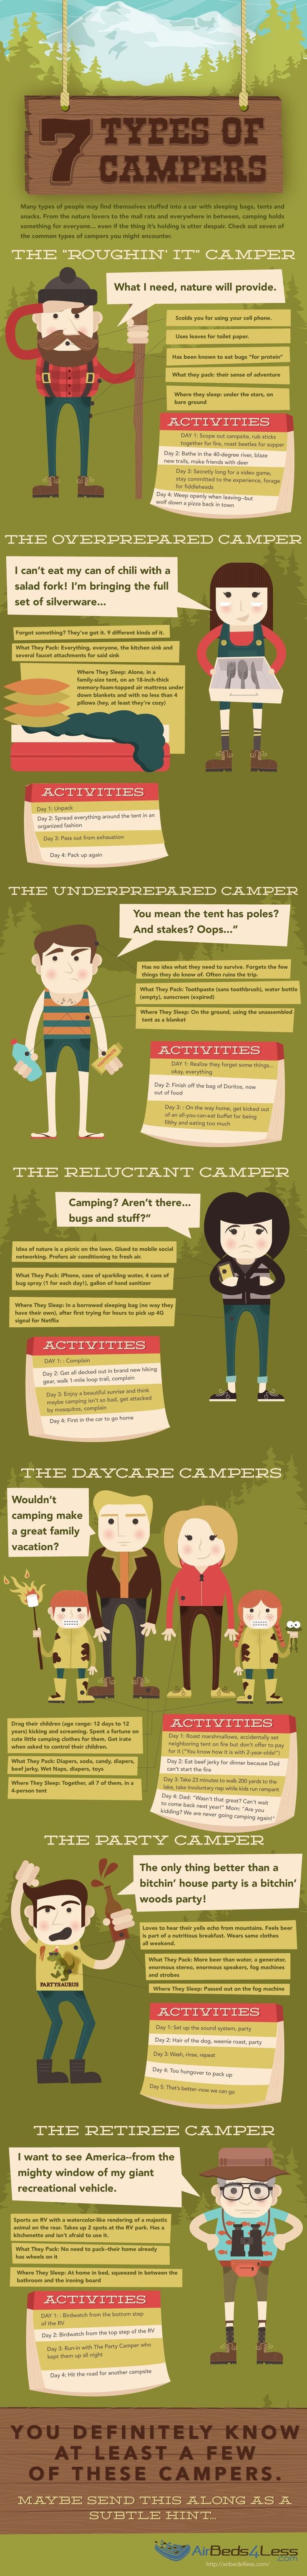 Types of CampersCamps Ideas, Camps Outdoor, Laugh, Campers, Stuff, Funny, The Great Outdoor, Infographic, 7 Types Of Camps